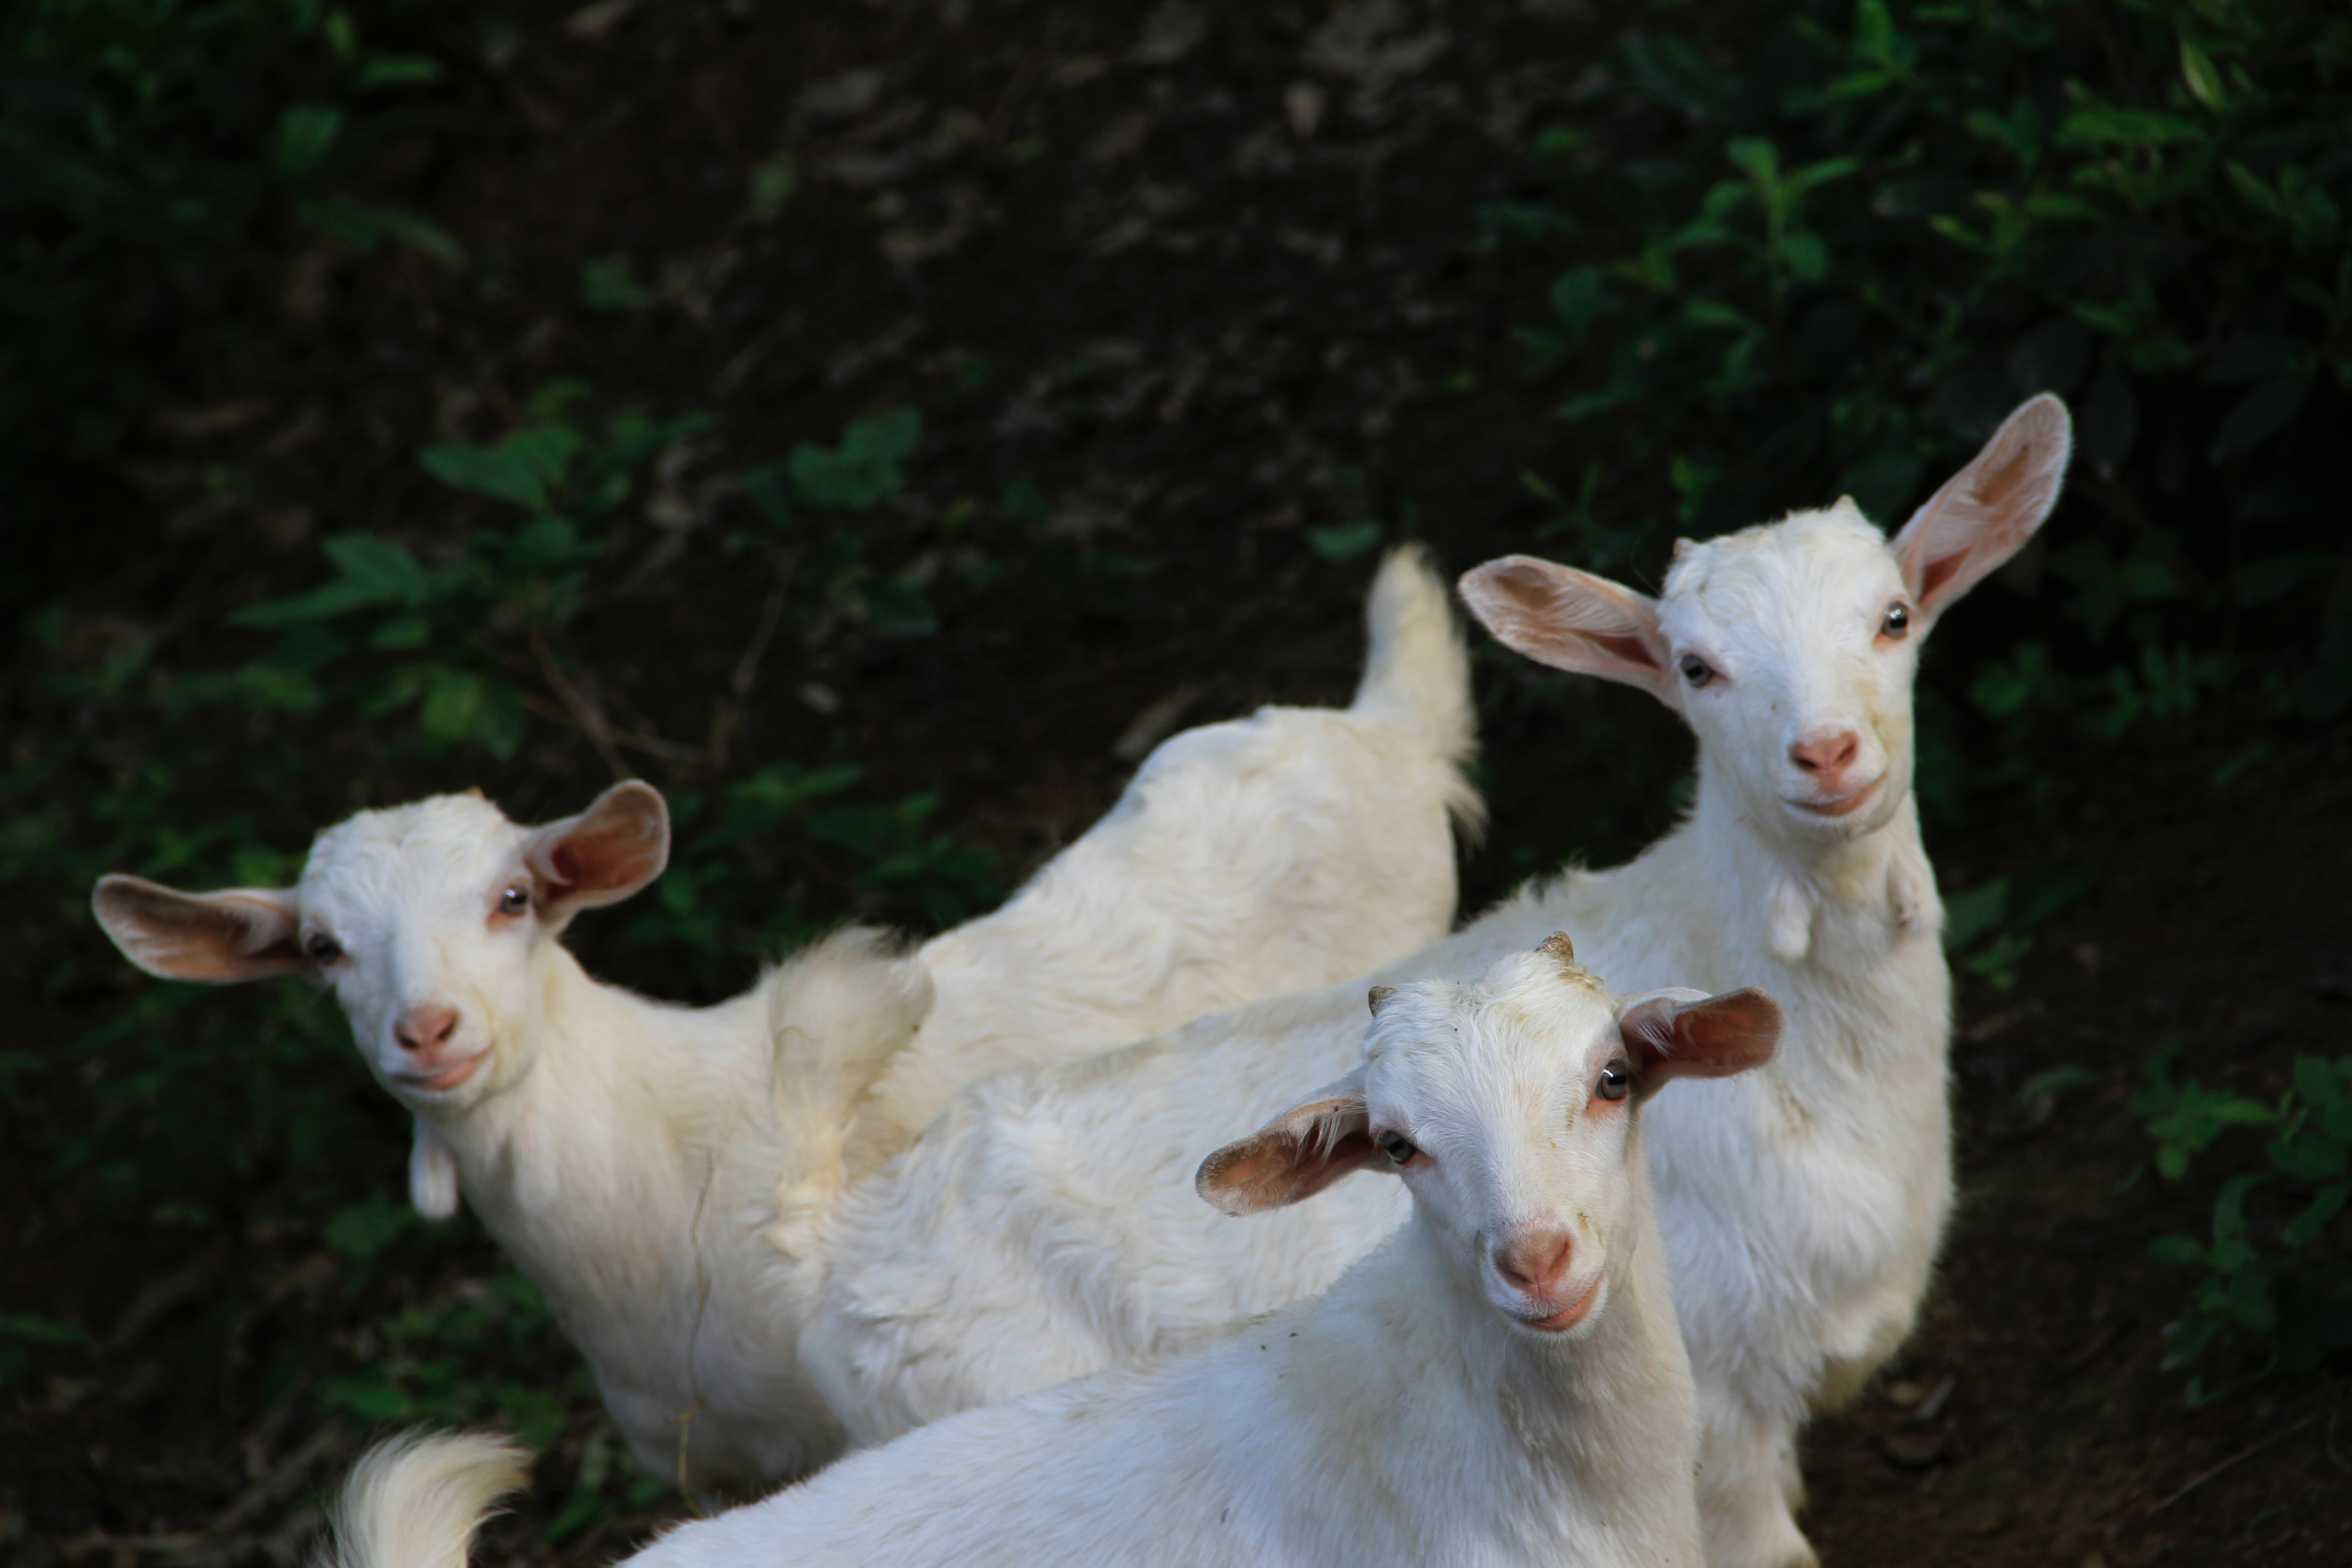 Goats are my favorite of the best farm animals to raise